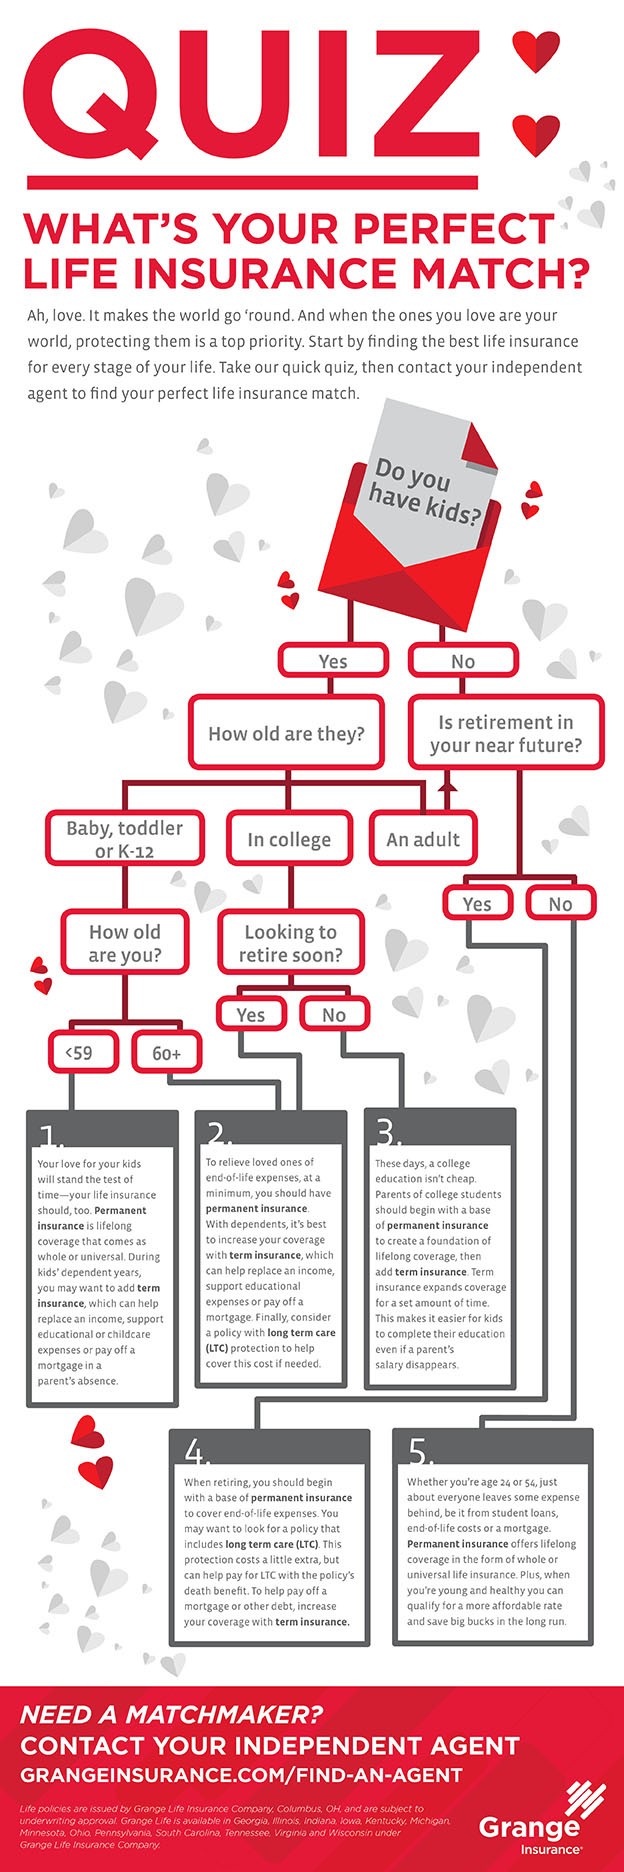 Infographic illustrating the perfect life insurance match